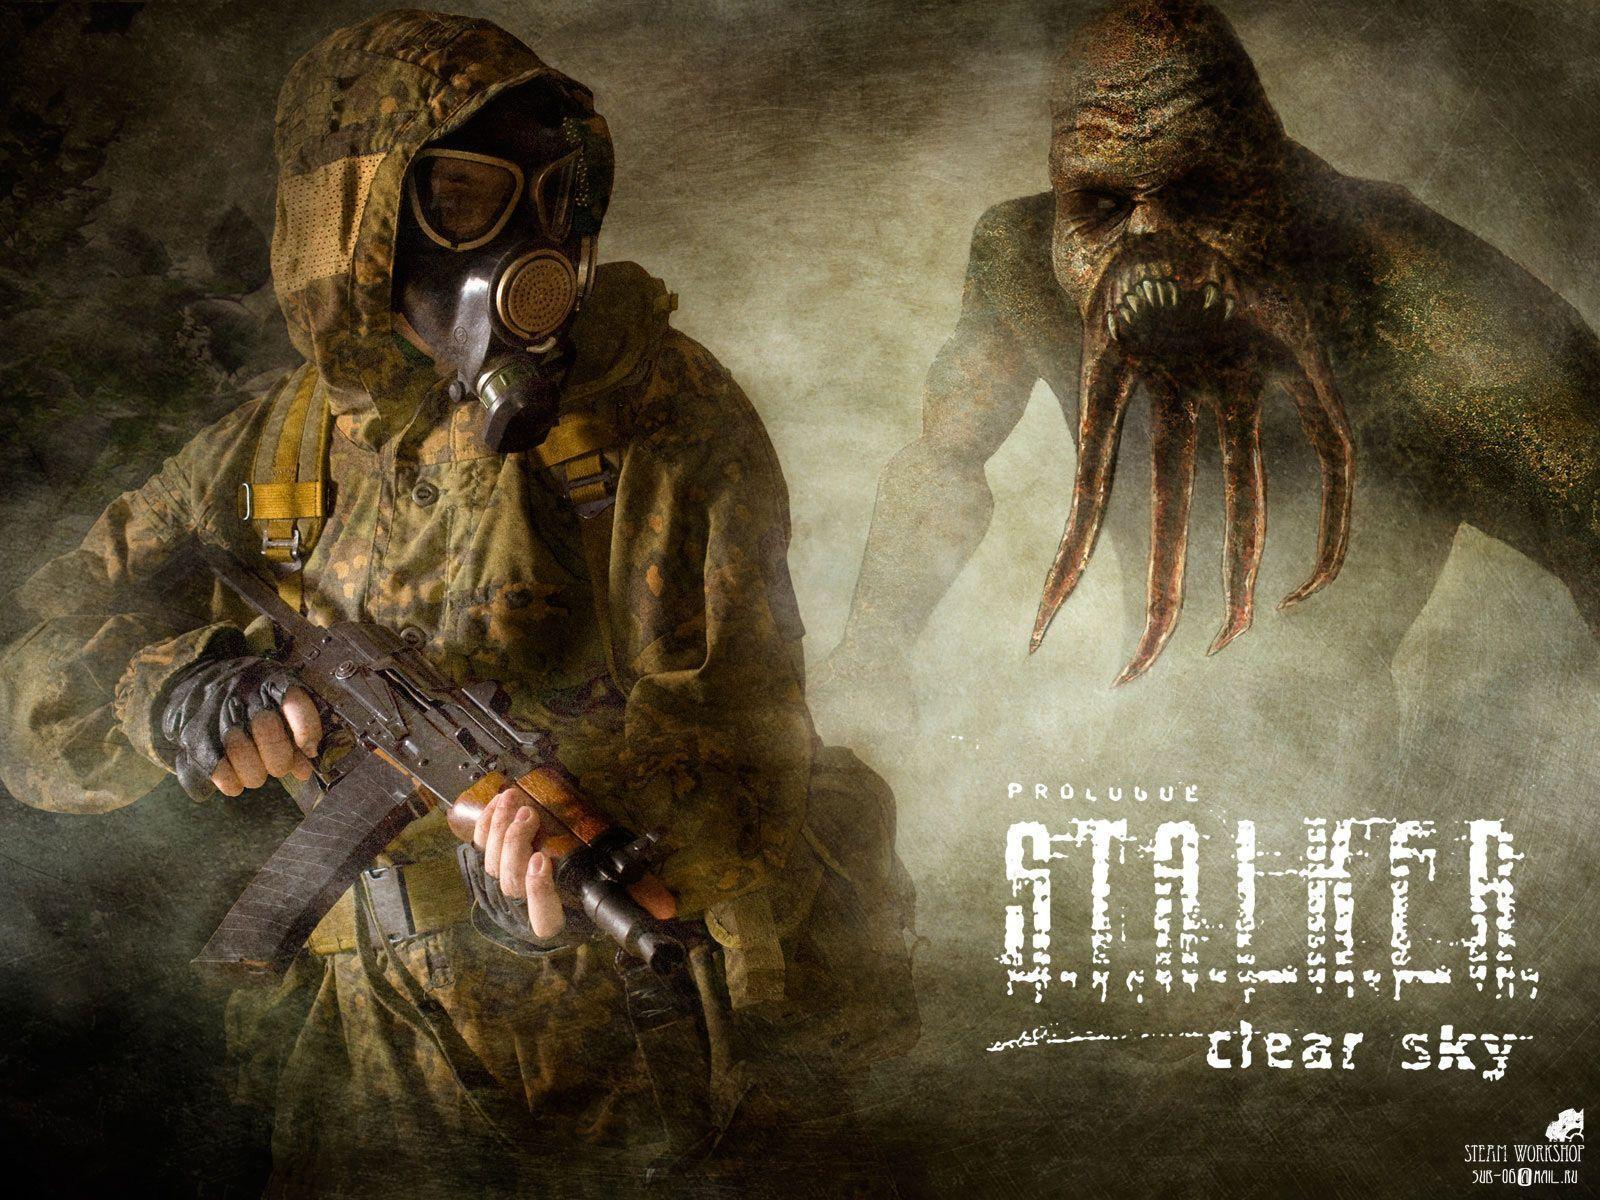 87 S.T.A.L.K.E.R. Wallpapers